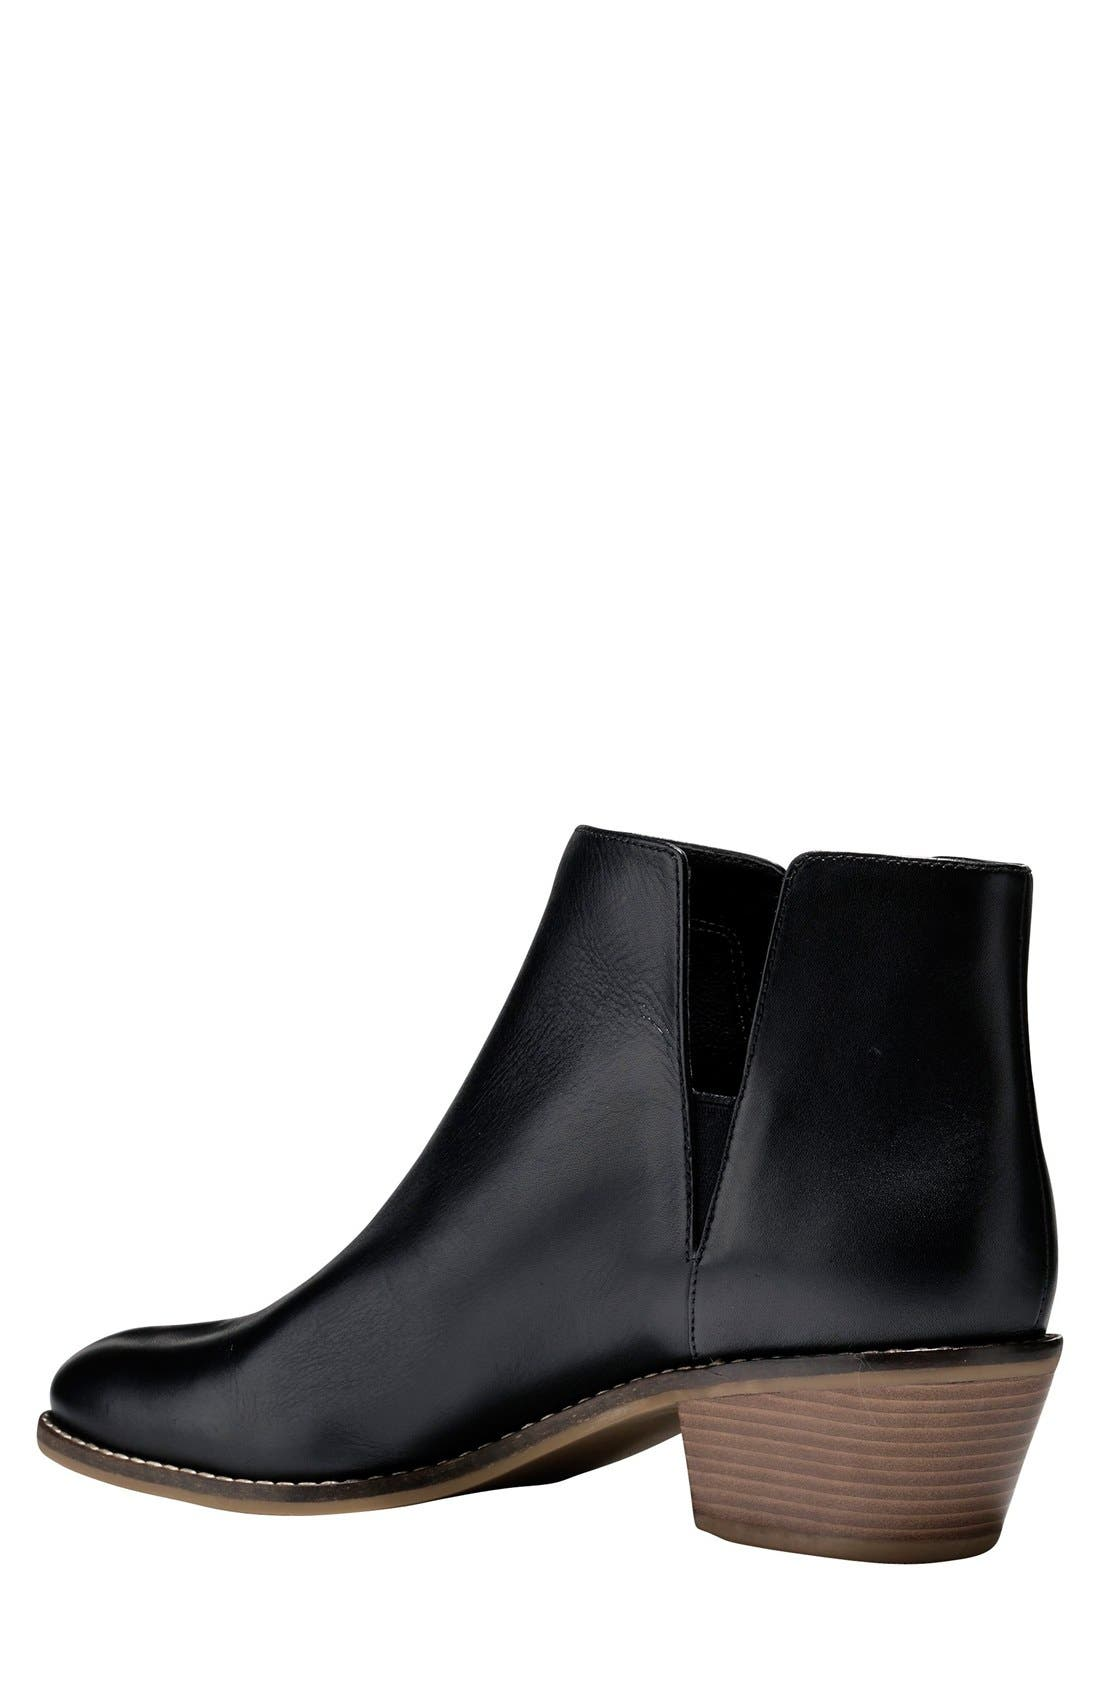 'Abbot' Chelsea Boot,                             Alternate thumbnail 40, color,